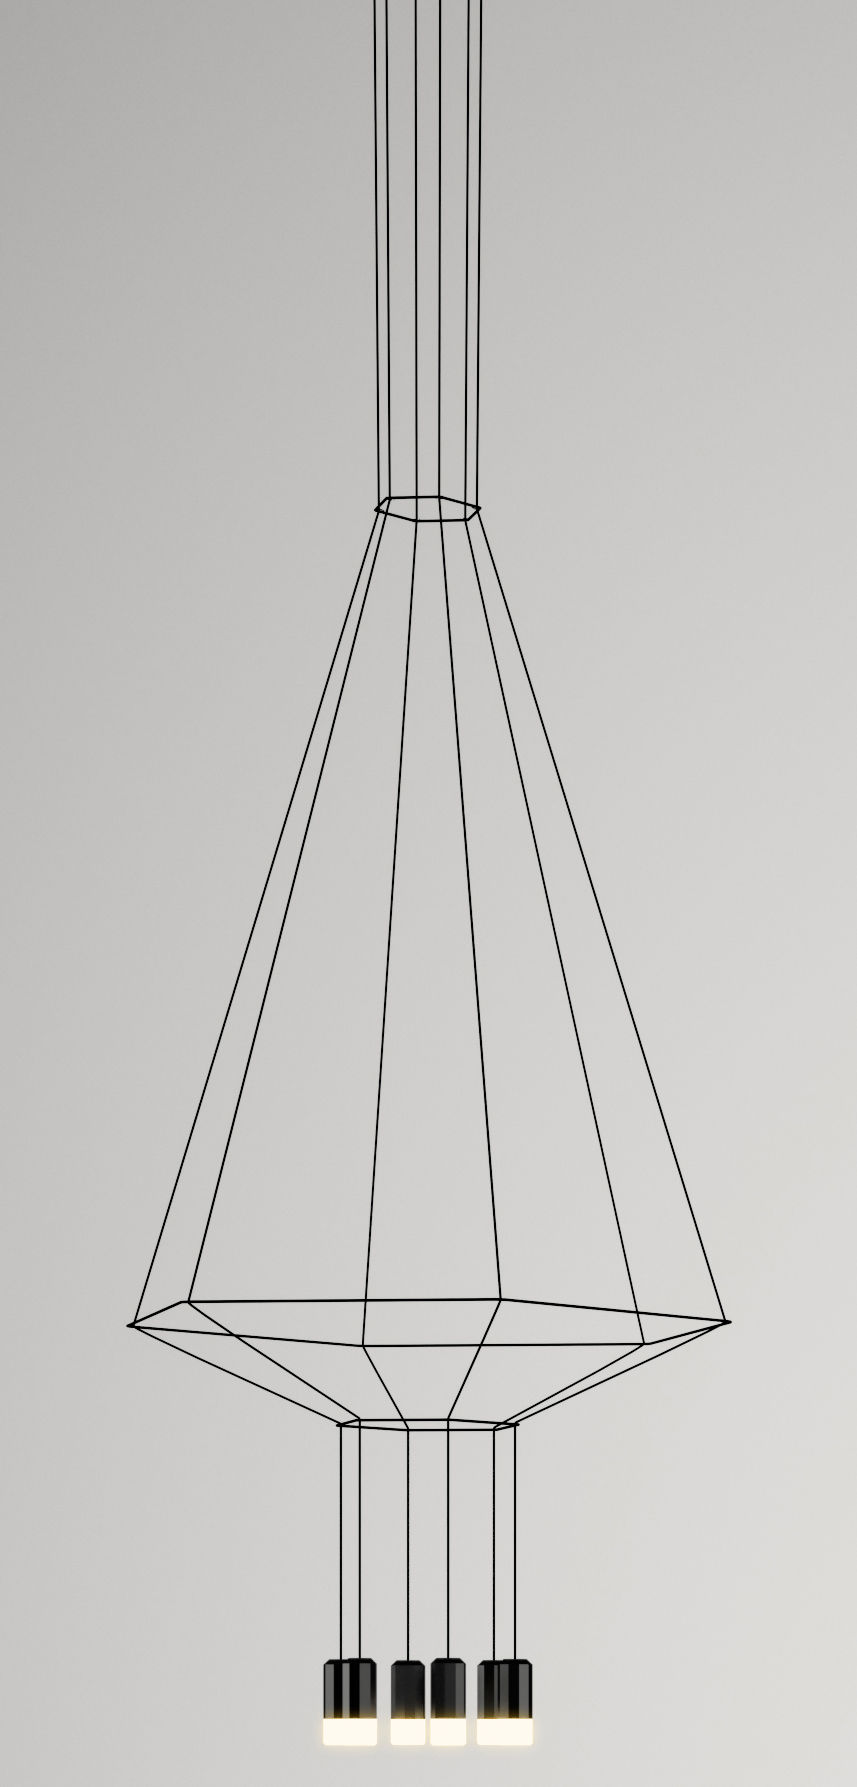 Lighting - Pendant Lighting - Wireflow Pendant by Vibia - Black - Fabric, Glass, Lacquered metal, Teflon